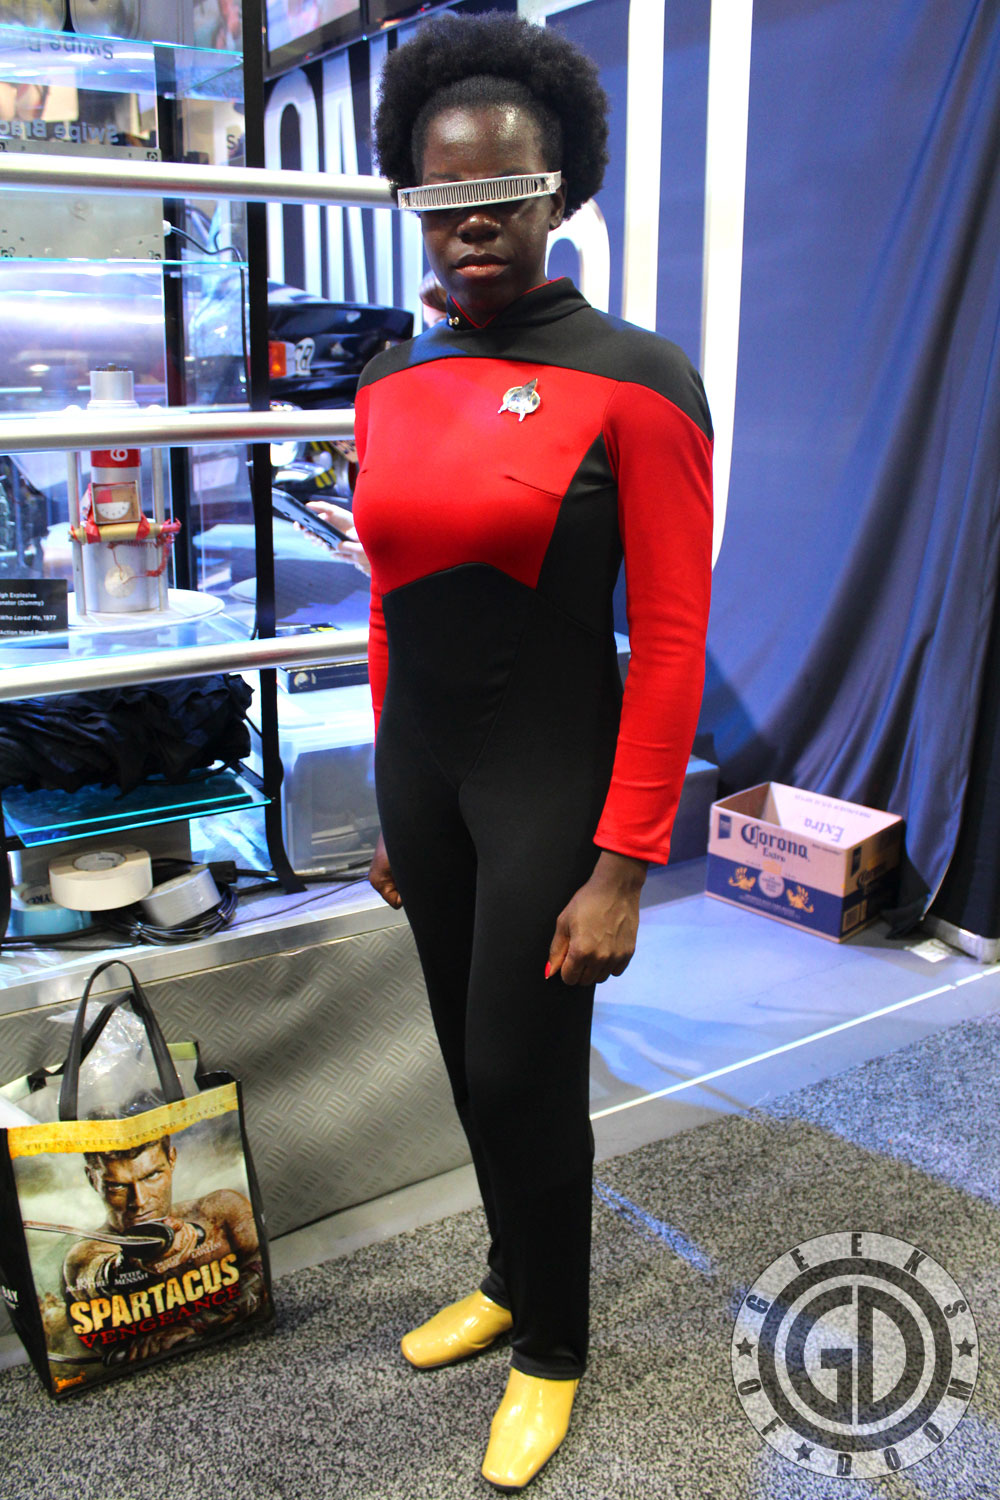 sdcc 2012 cosplay round up star trek tng geordi la forge crossplay. Black Bedroom Furniture Sets. Home Design Ideas